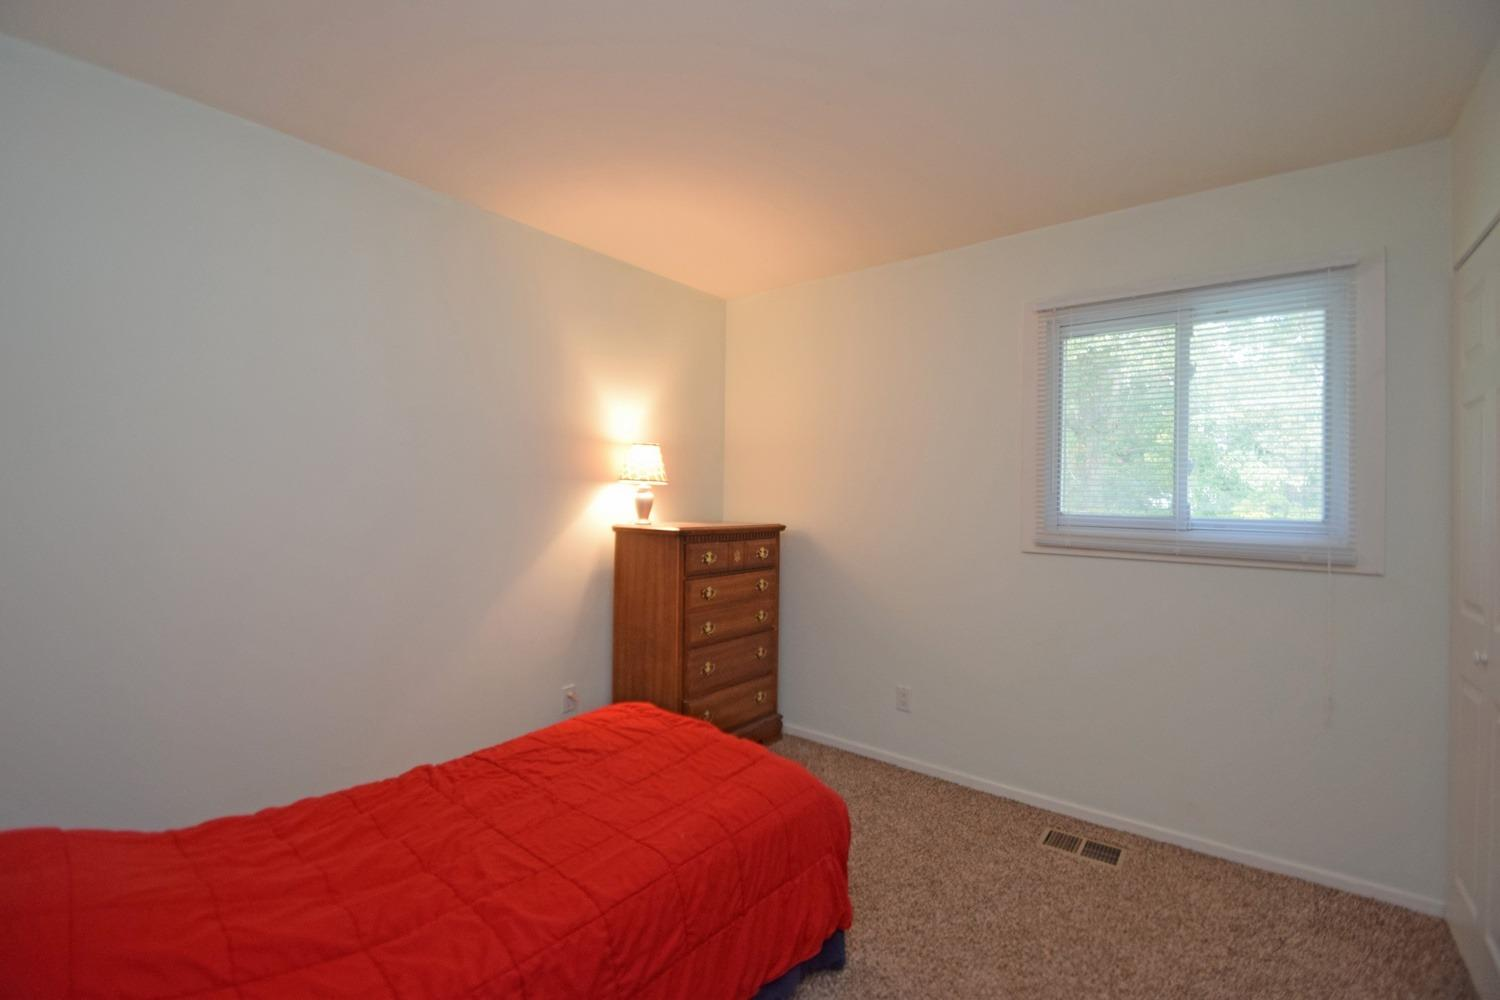 Property for sale at 12 Iroquois Drive, Loveland,  OH 45140